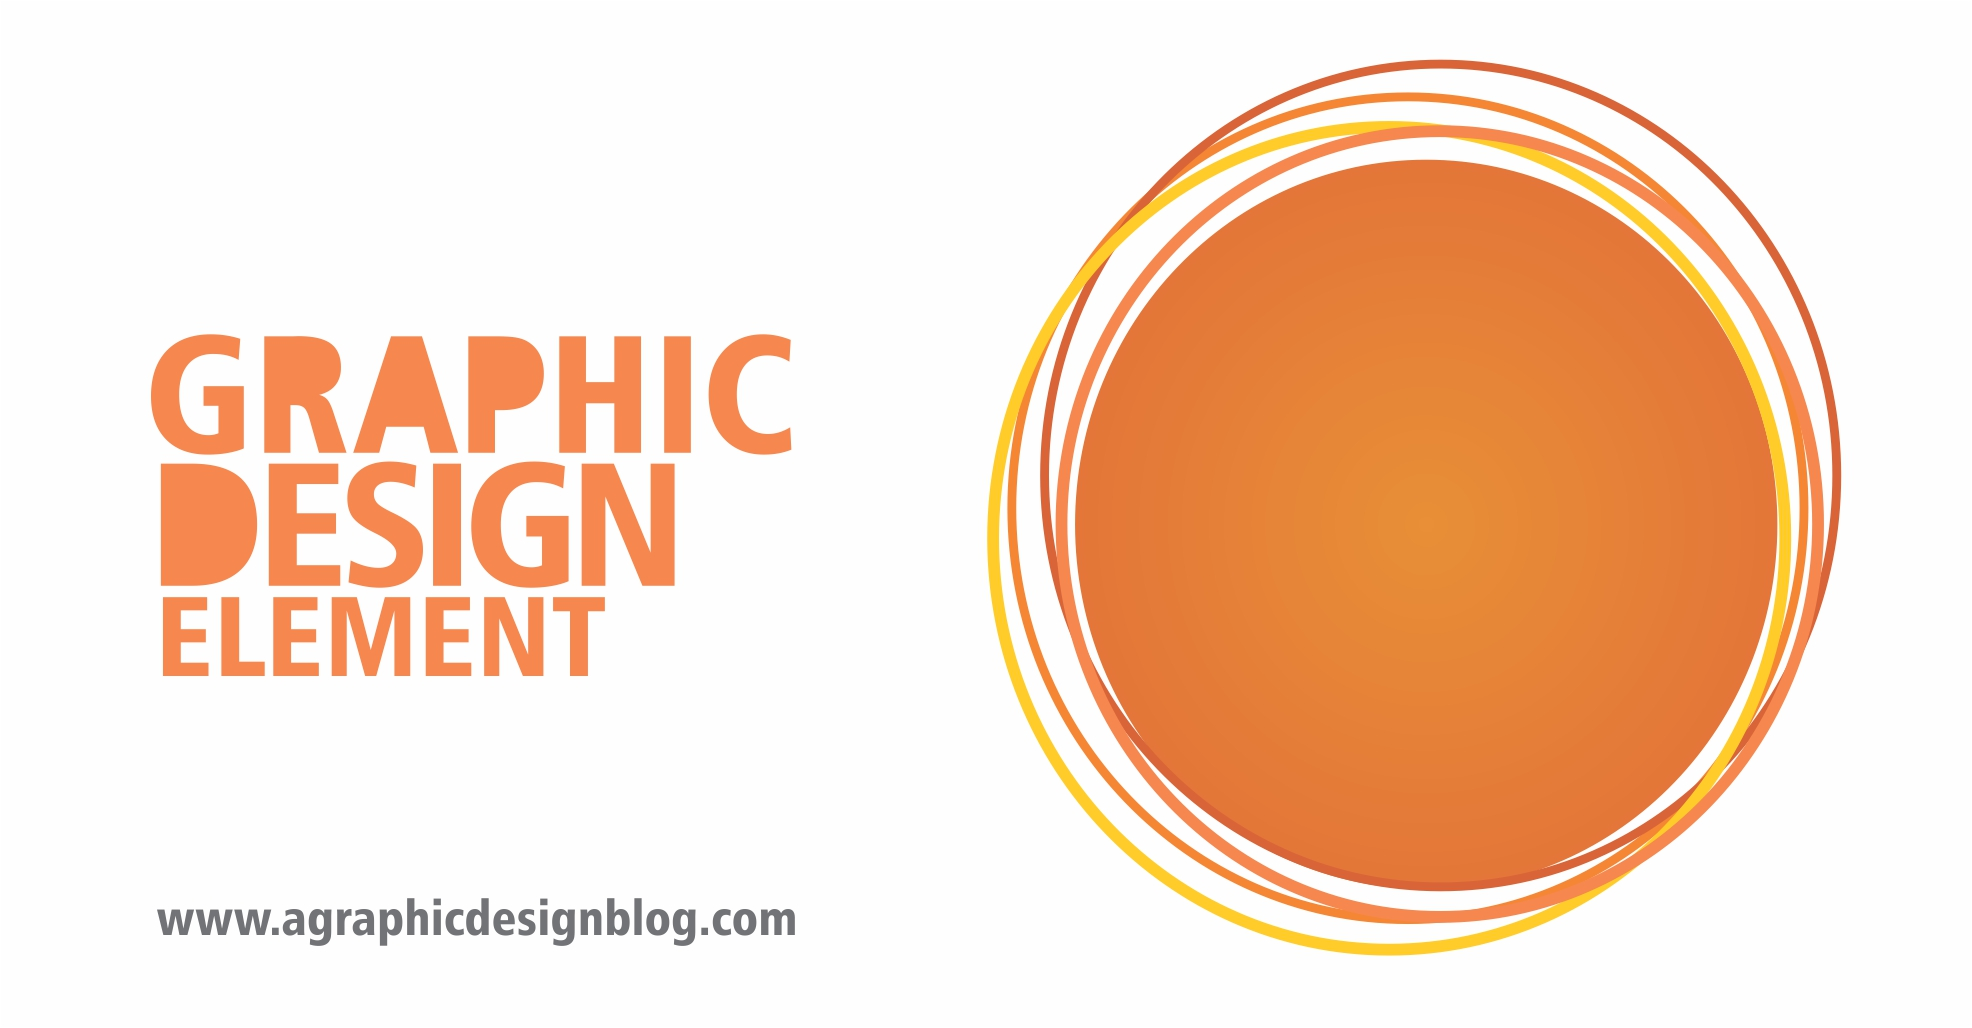 graphic design elements a graphic design blog